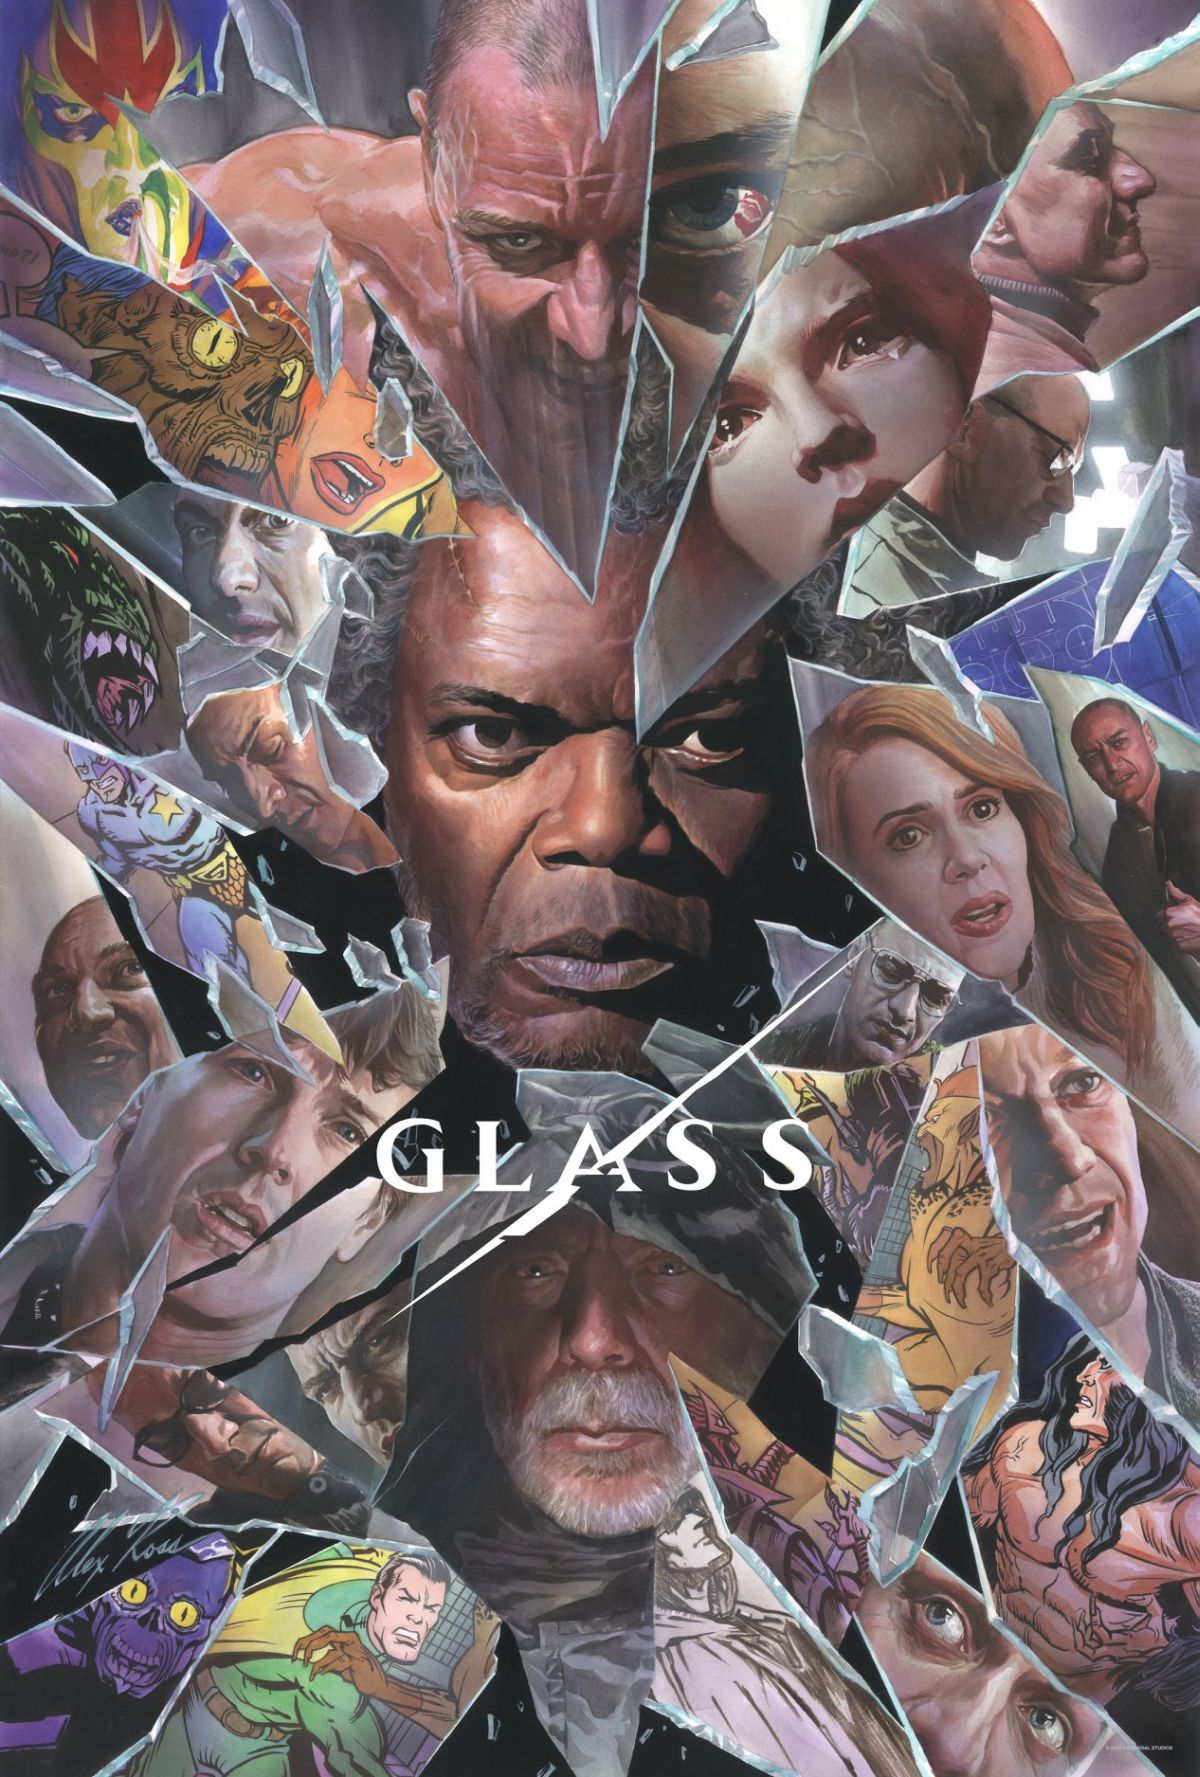 Póster 'Glass' Alex Ross